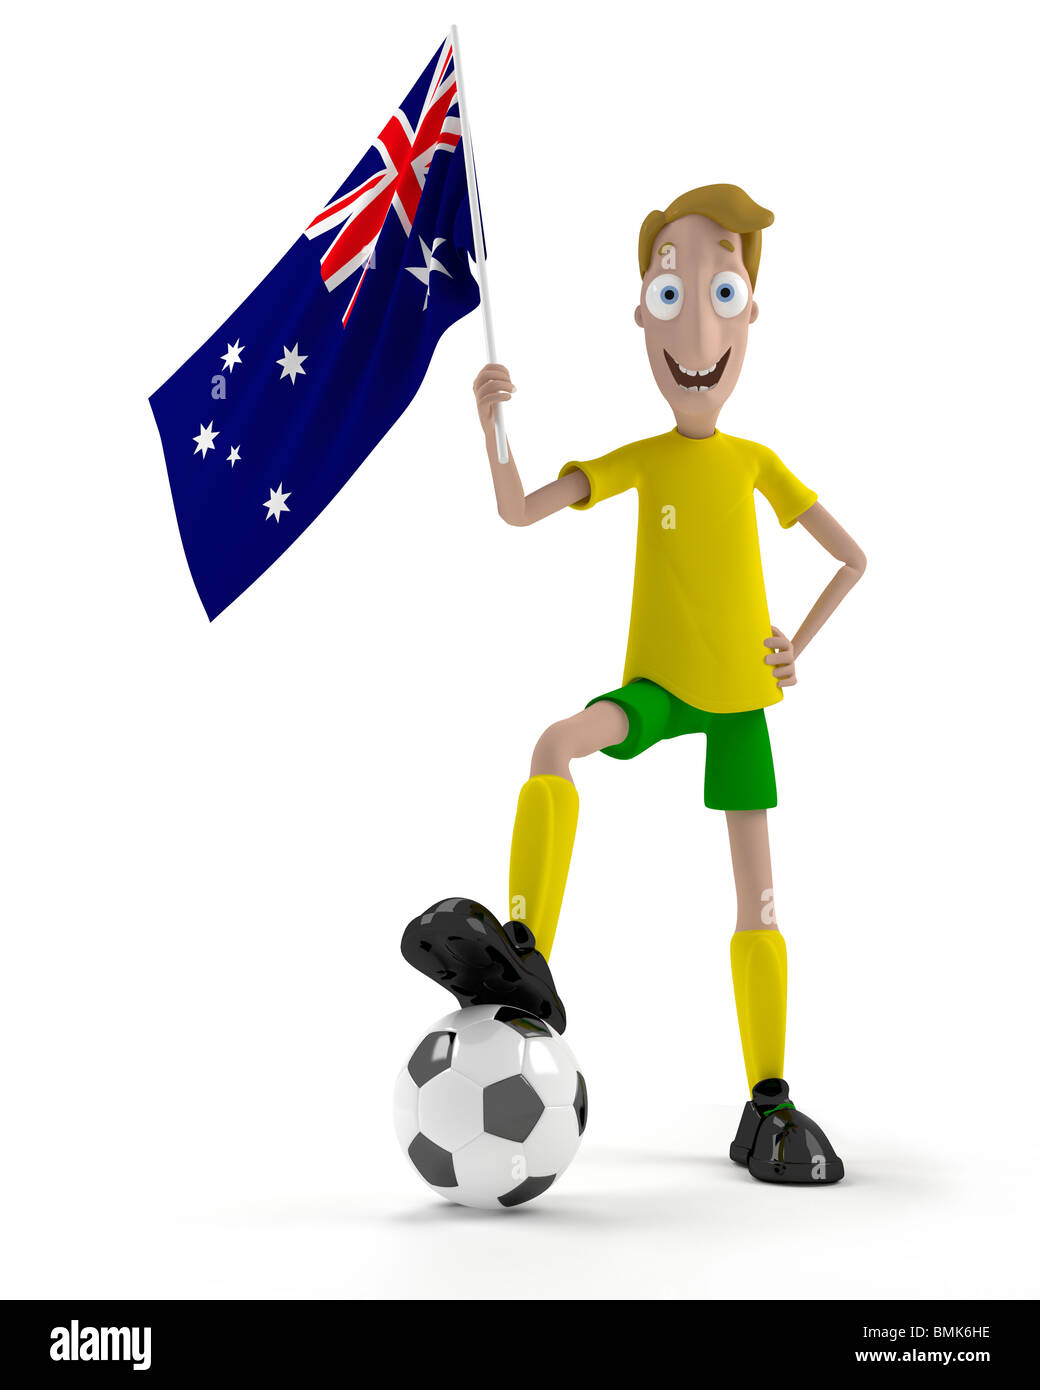 Smiling cartoon style soccer player with ball and Australia flag - Stock Image